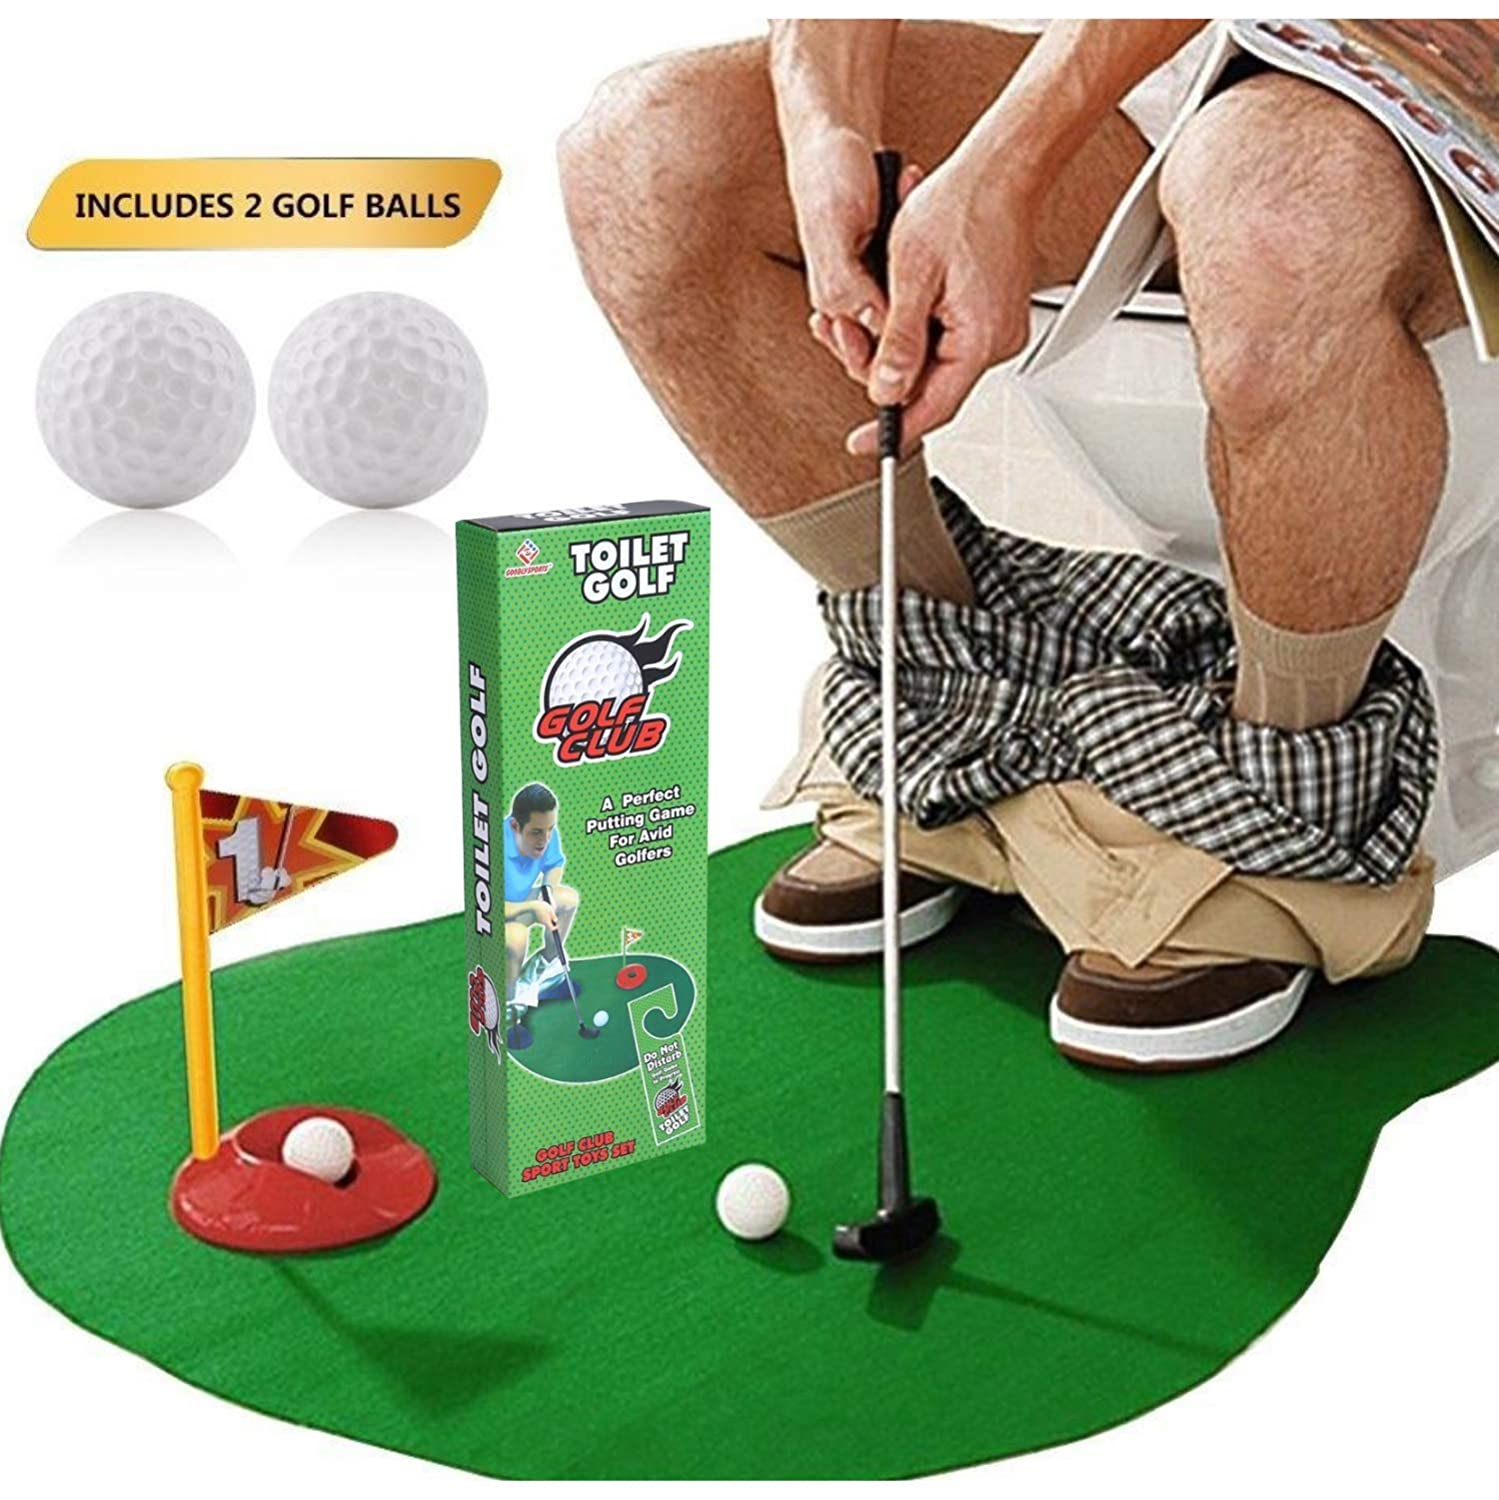 Amazon.com: SAFAK Potty Putter Funny - Juego de regalo para ...